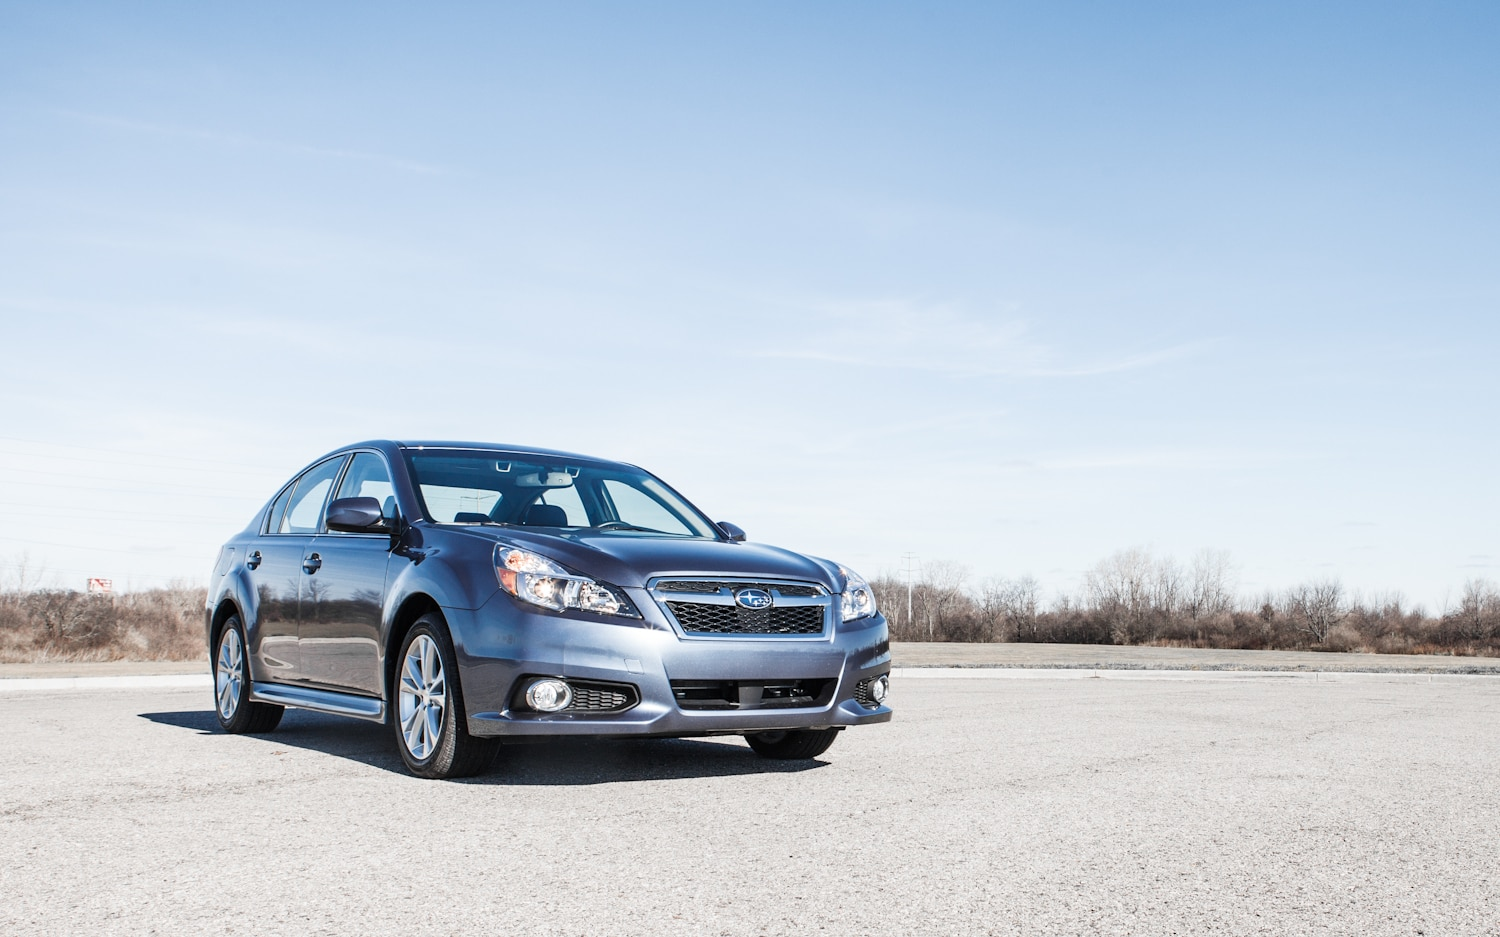 2013 Subaru Legacy 2 5i EyeSight Front Right View1